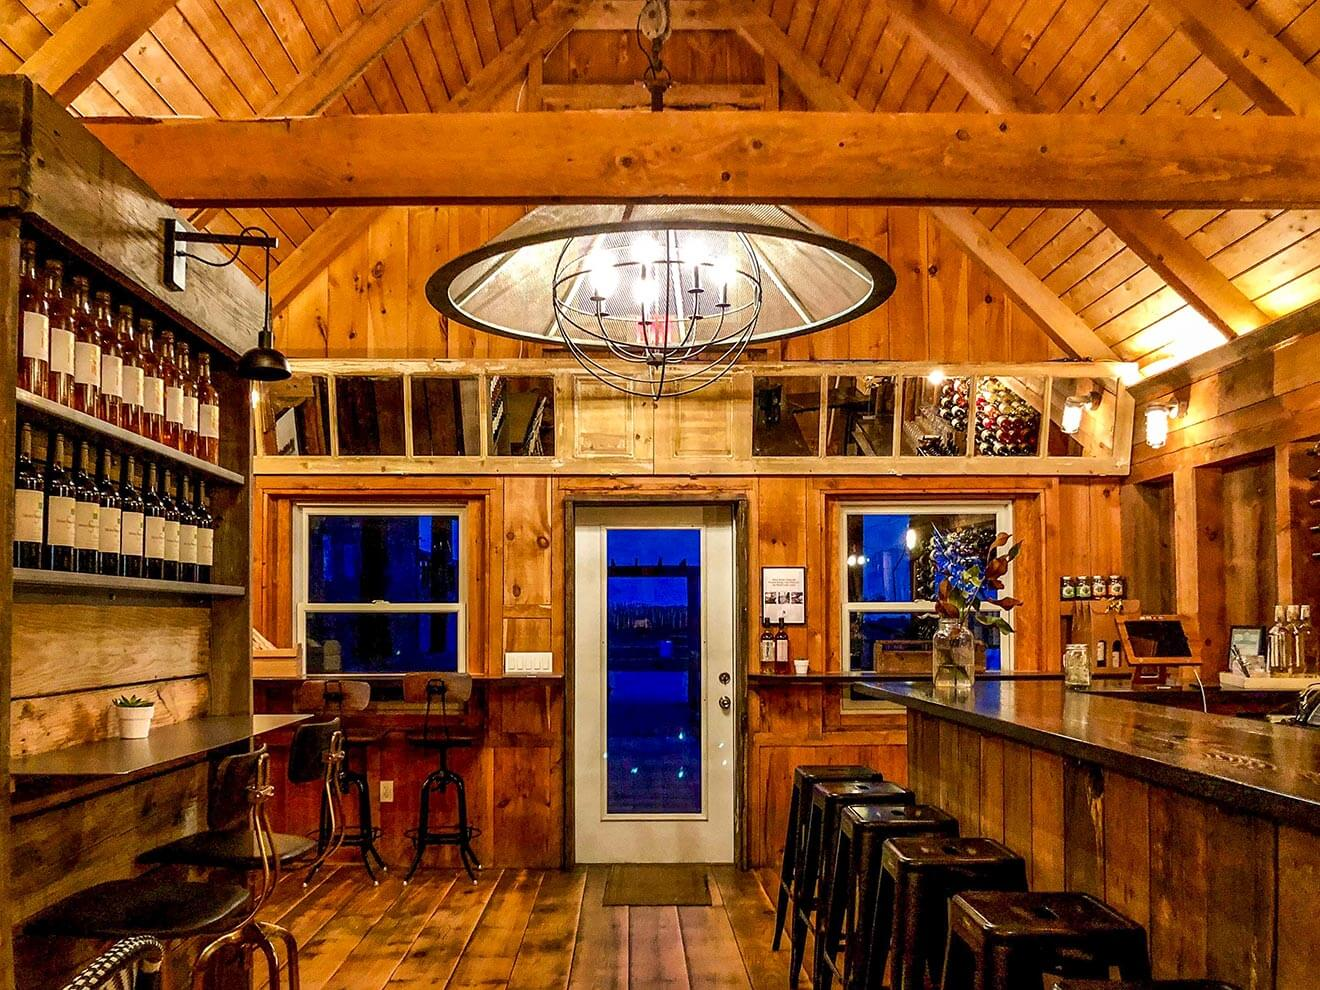 Shinn Estate Tasting Patio, room with wood paneling, bottles on shelves